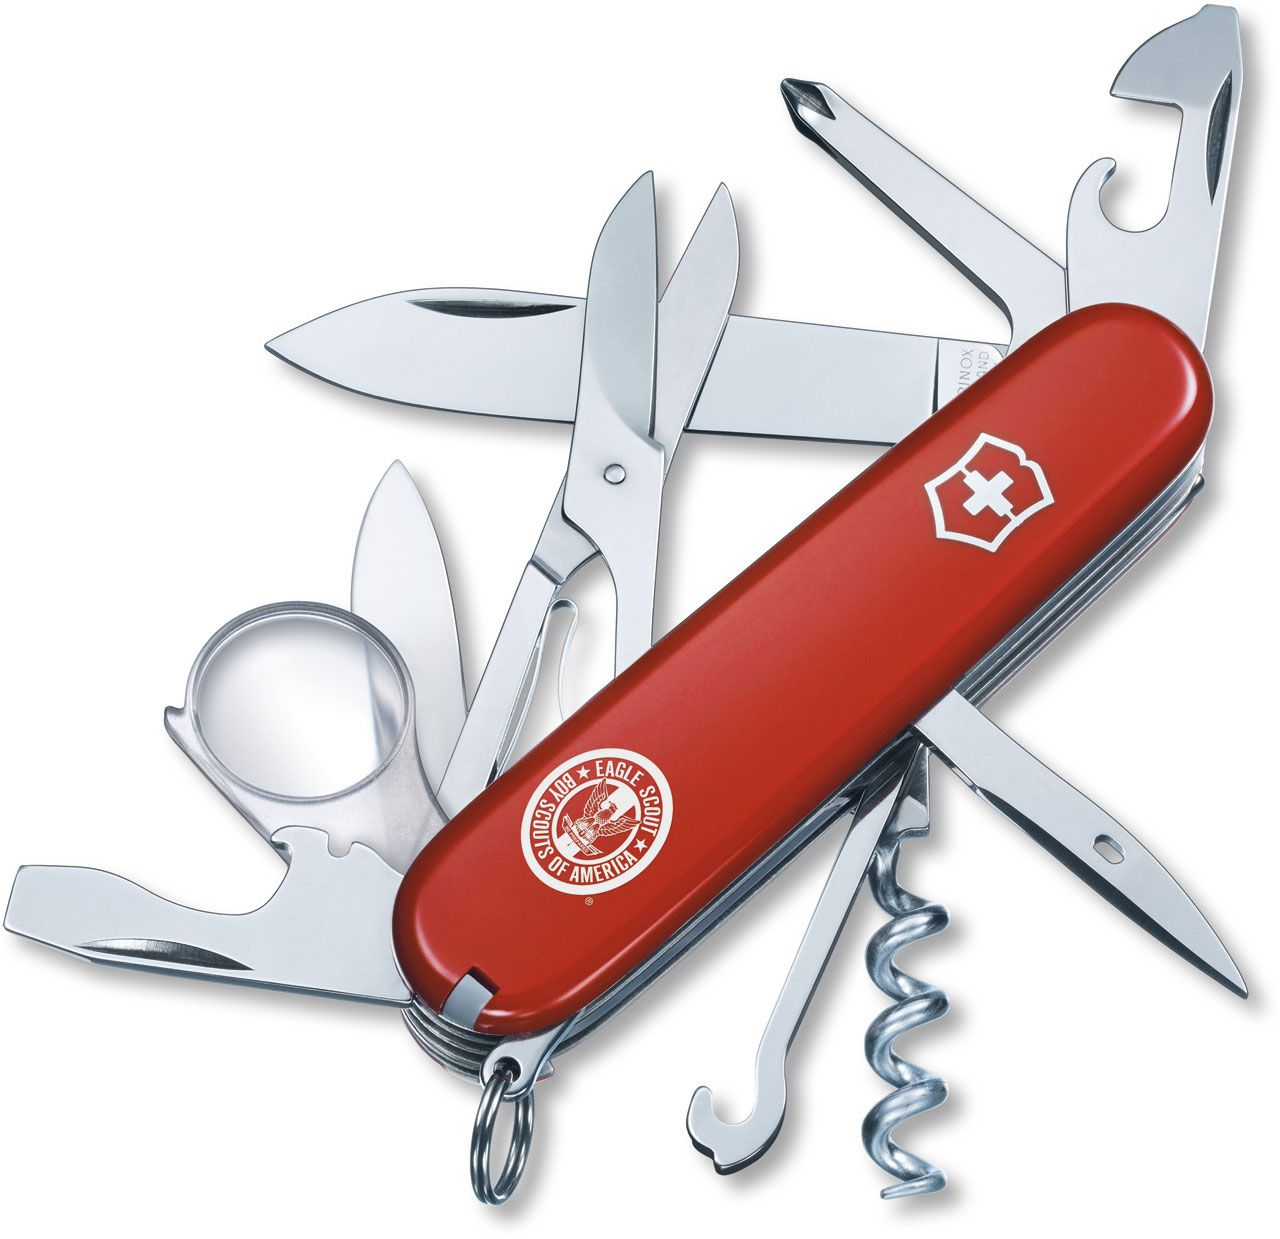 Victorinox Swiss Army Explorer Multi-Tool, Red, Eagle Scout, 3.58 inch Closed (Old Sku 54782)